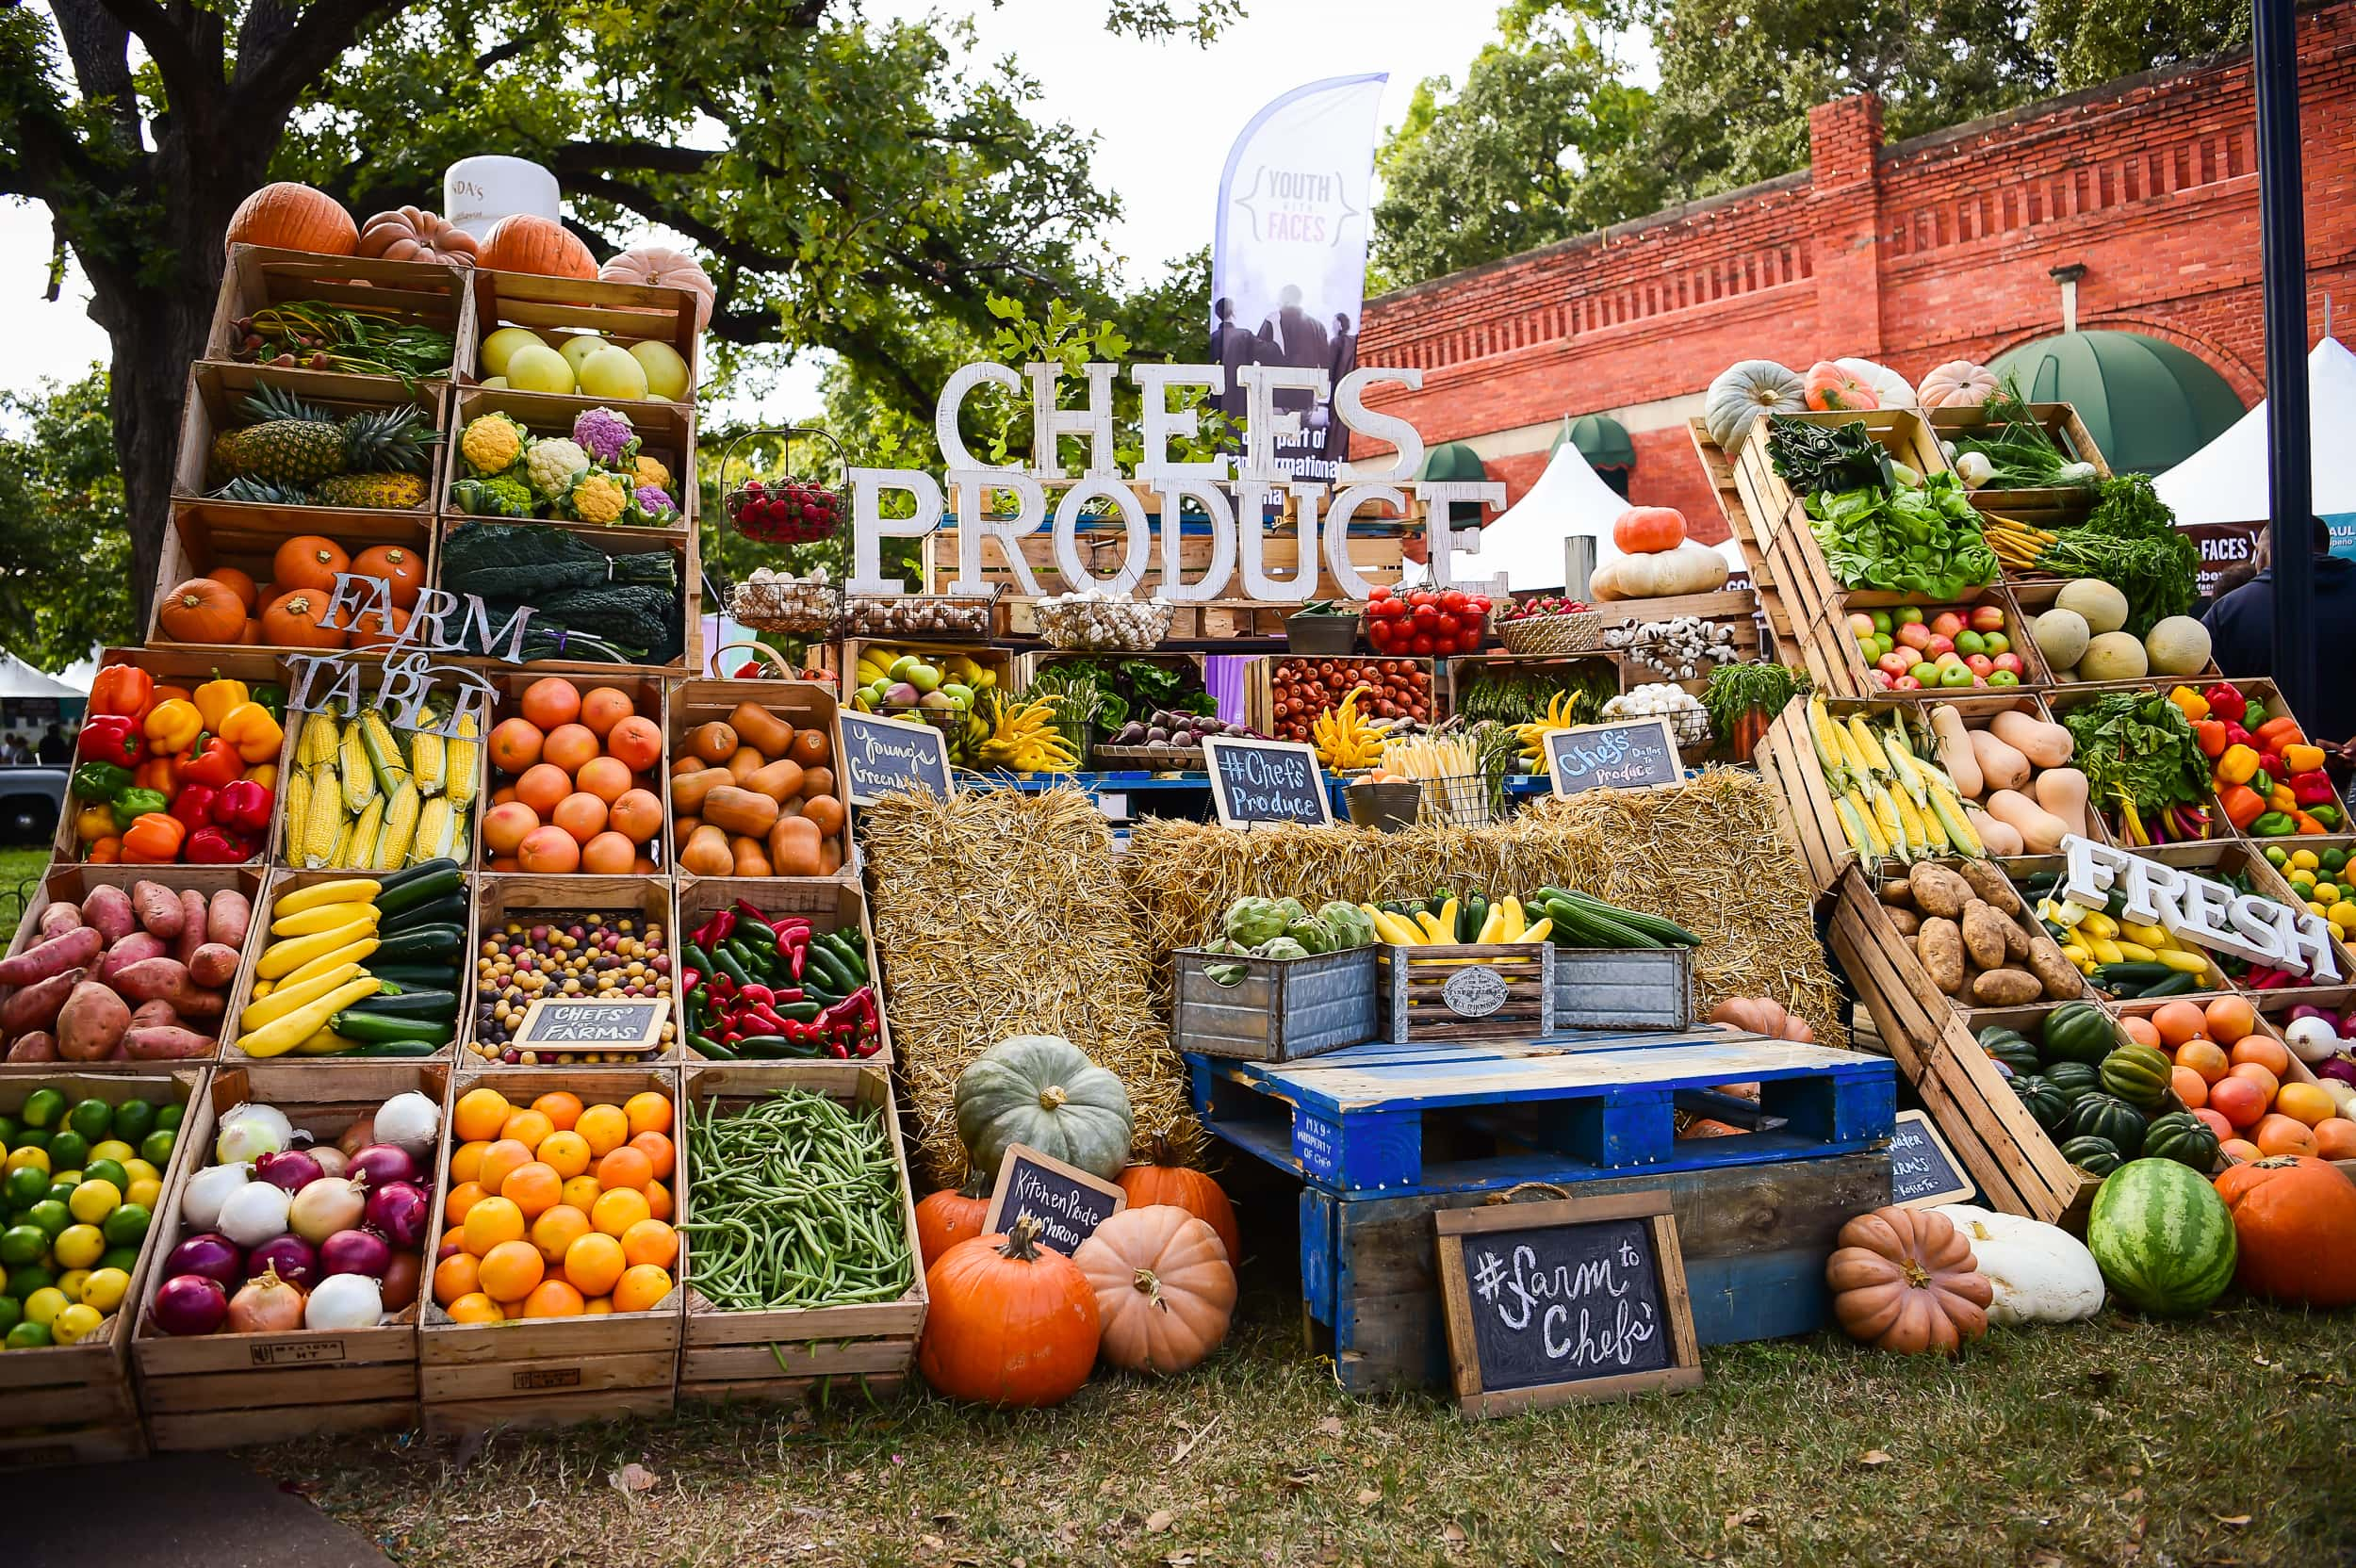 Tickets To Chefs For Farmers Reboot Are On Sale Now